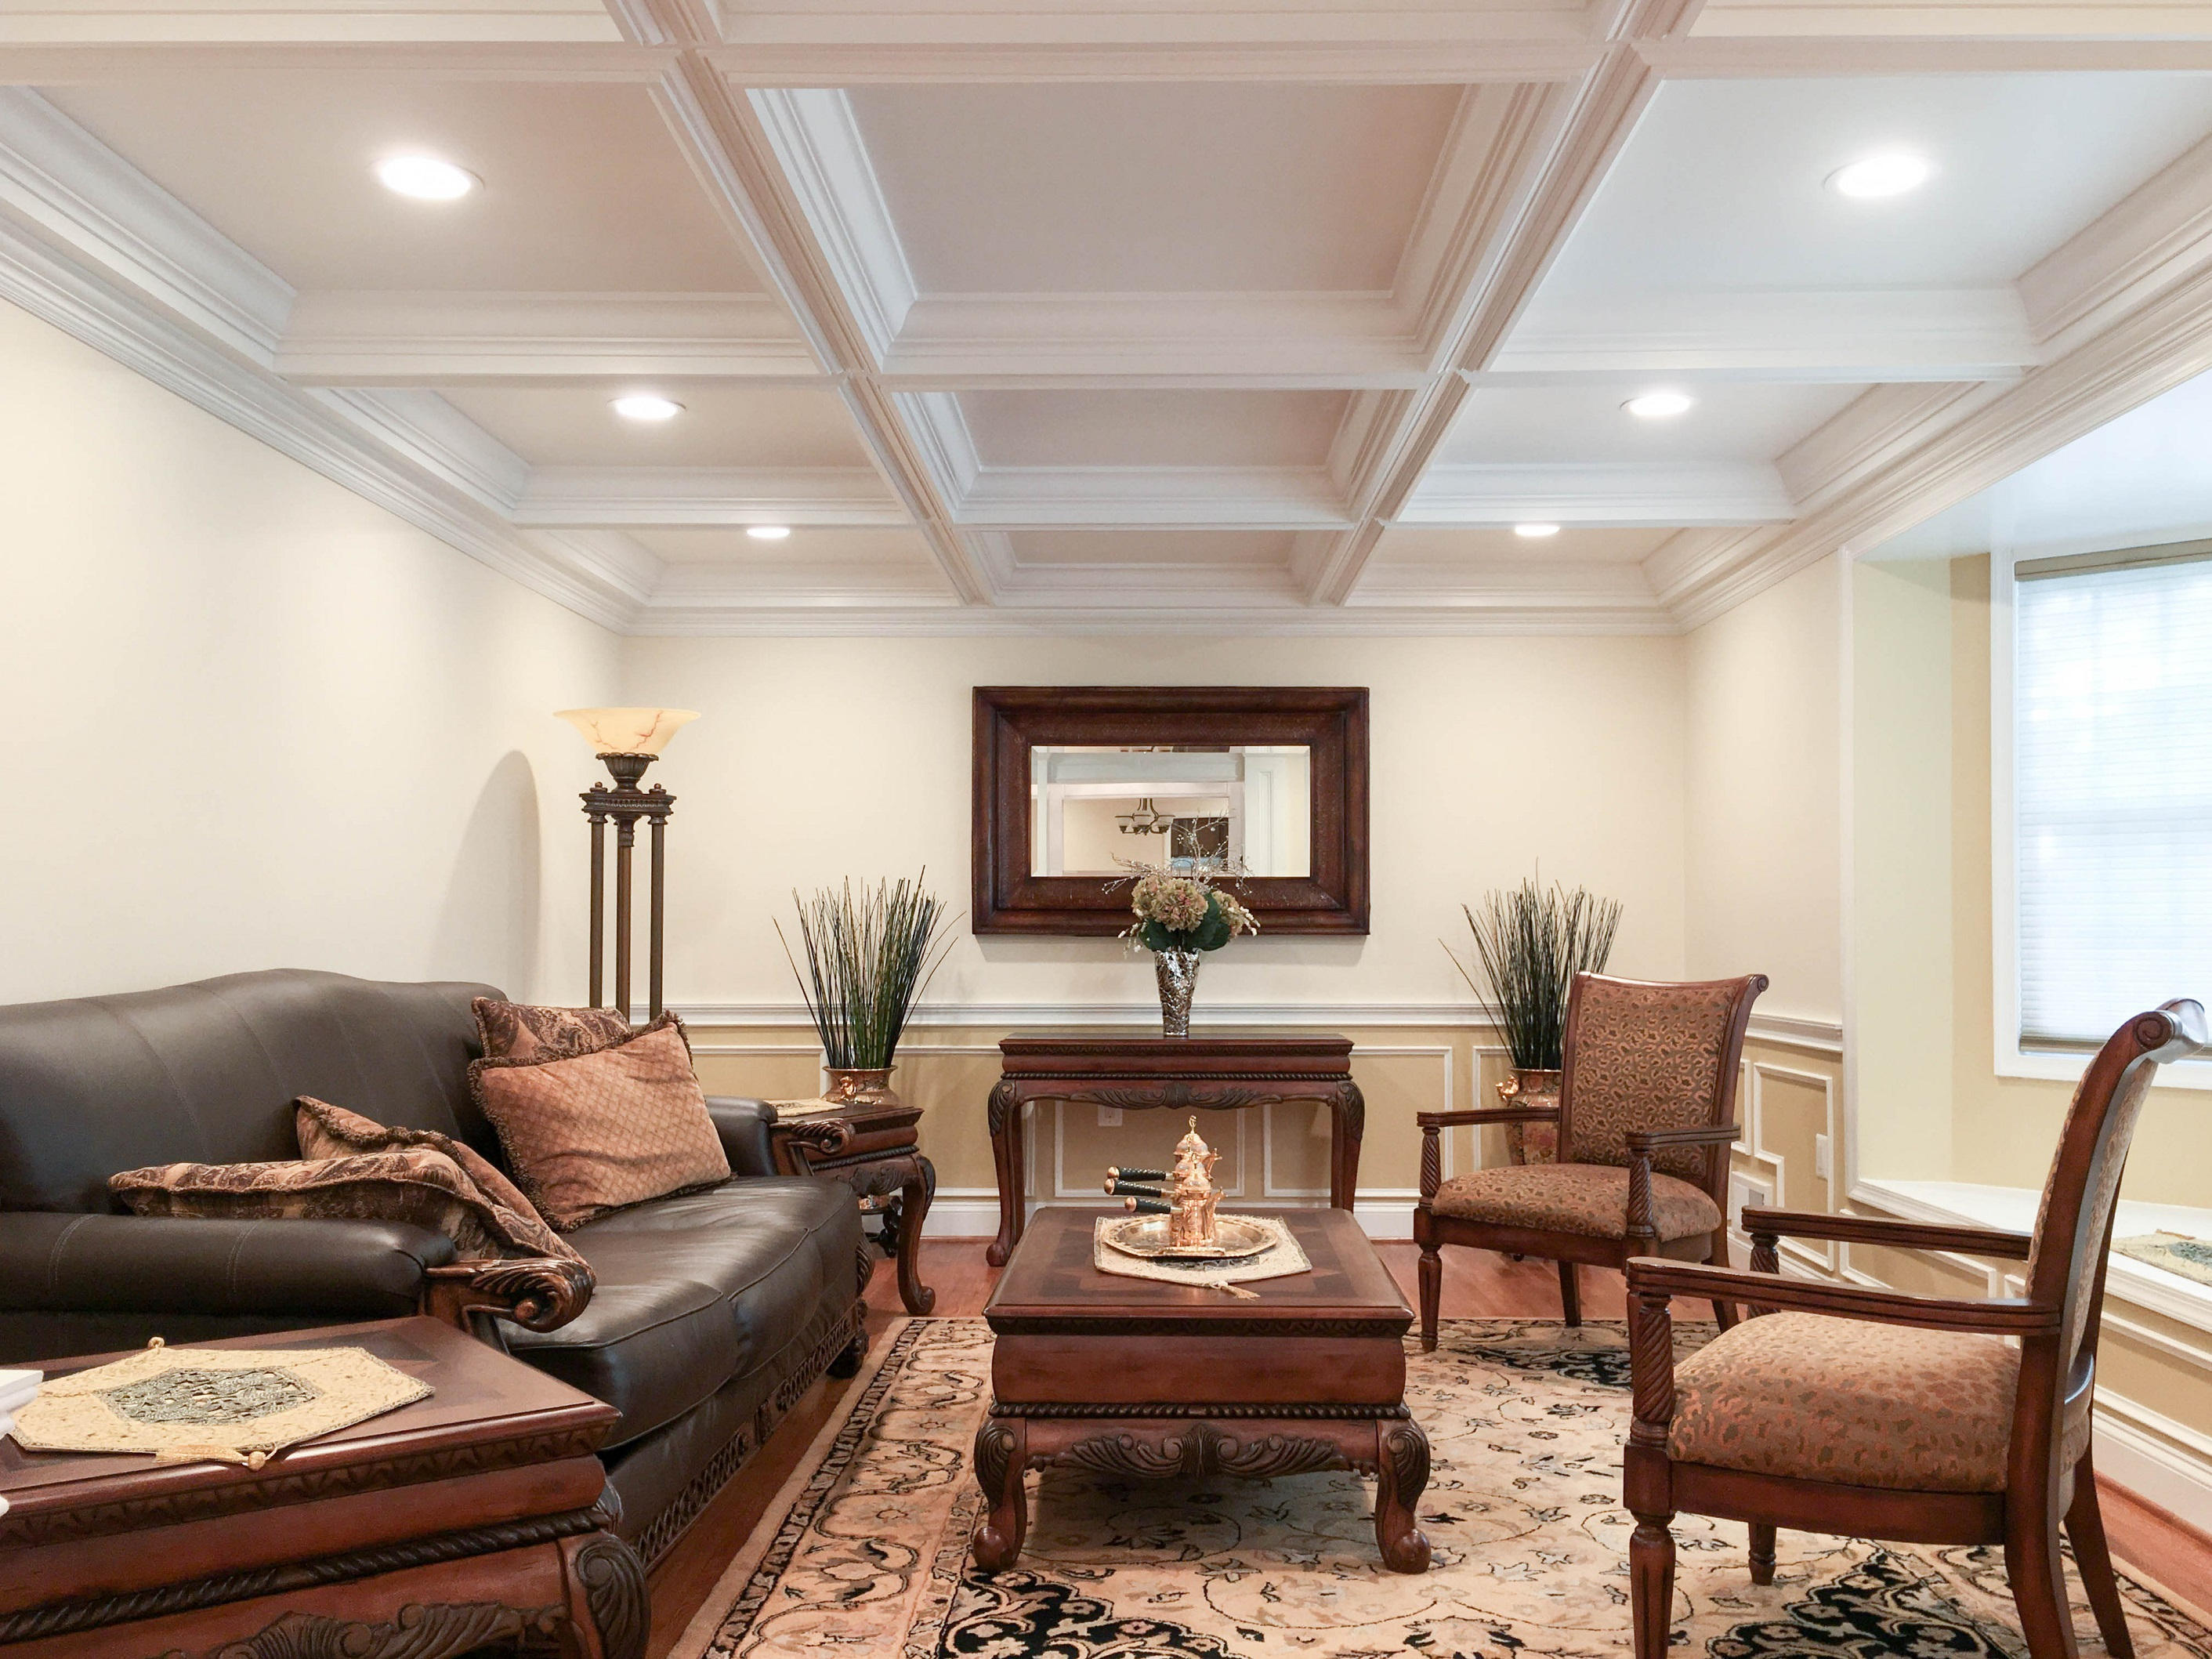 Home Remodeling Contractor In Fairfax Virginia